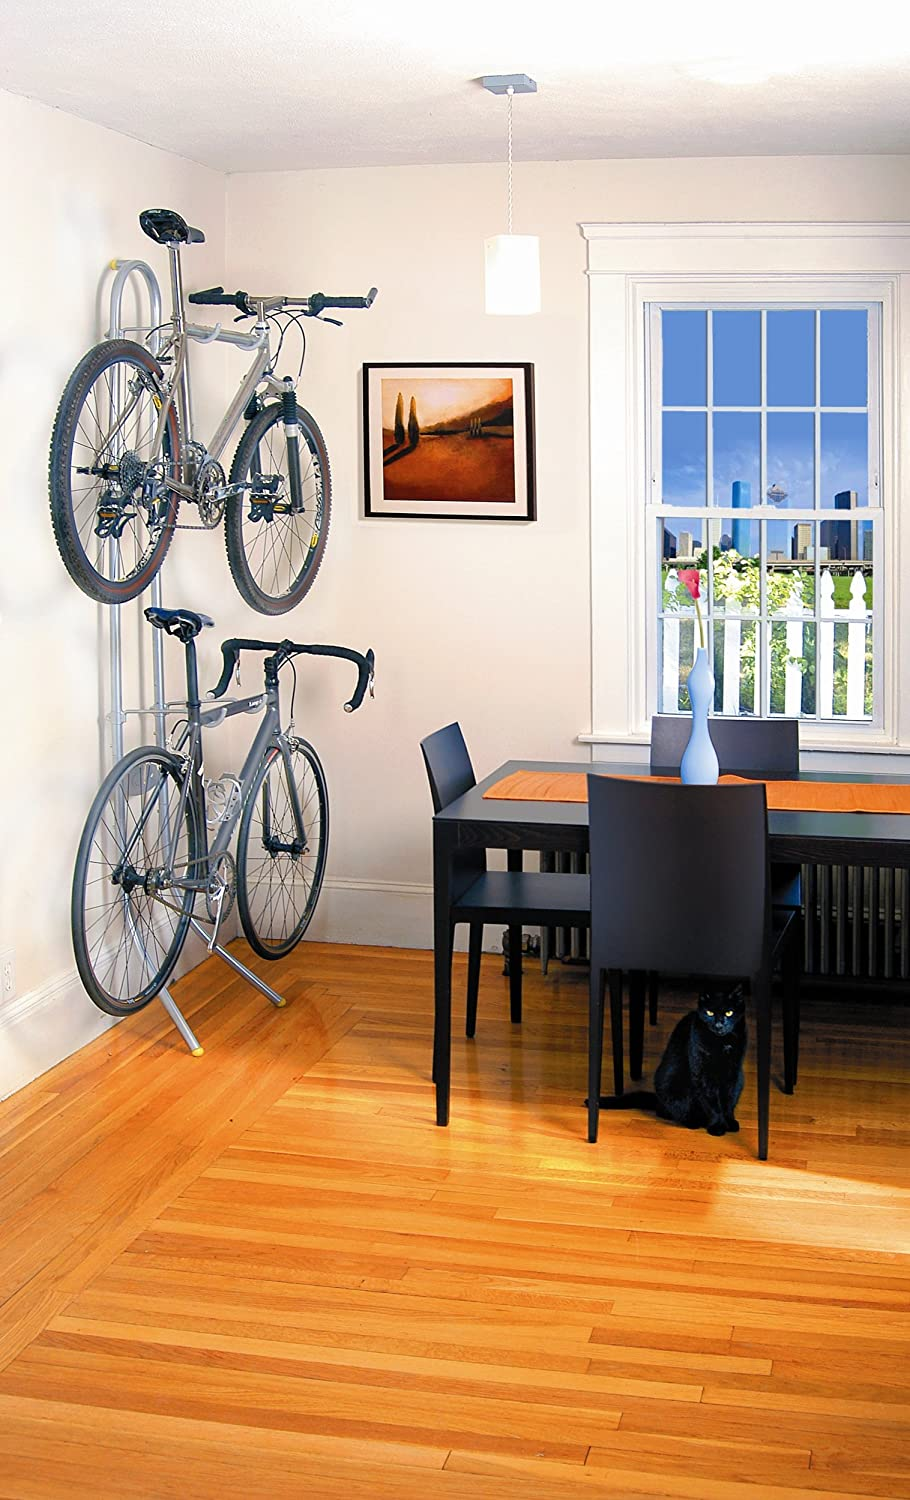 two bike gravity stand bicycle storage rack wall mount home garage two bike gravity stand bicycle storage rack wall mount home garage apartment tms